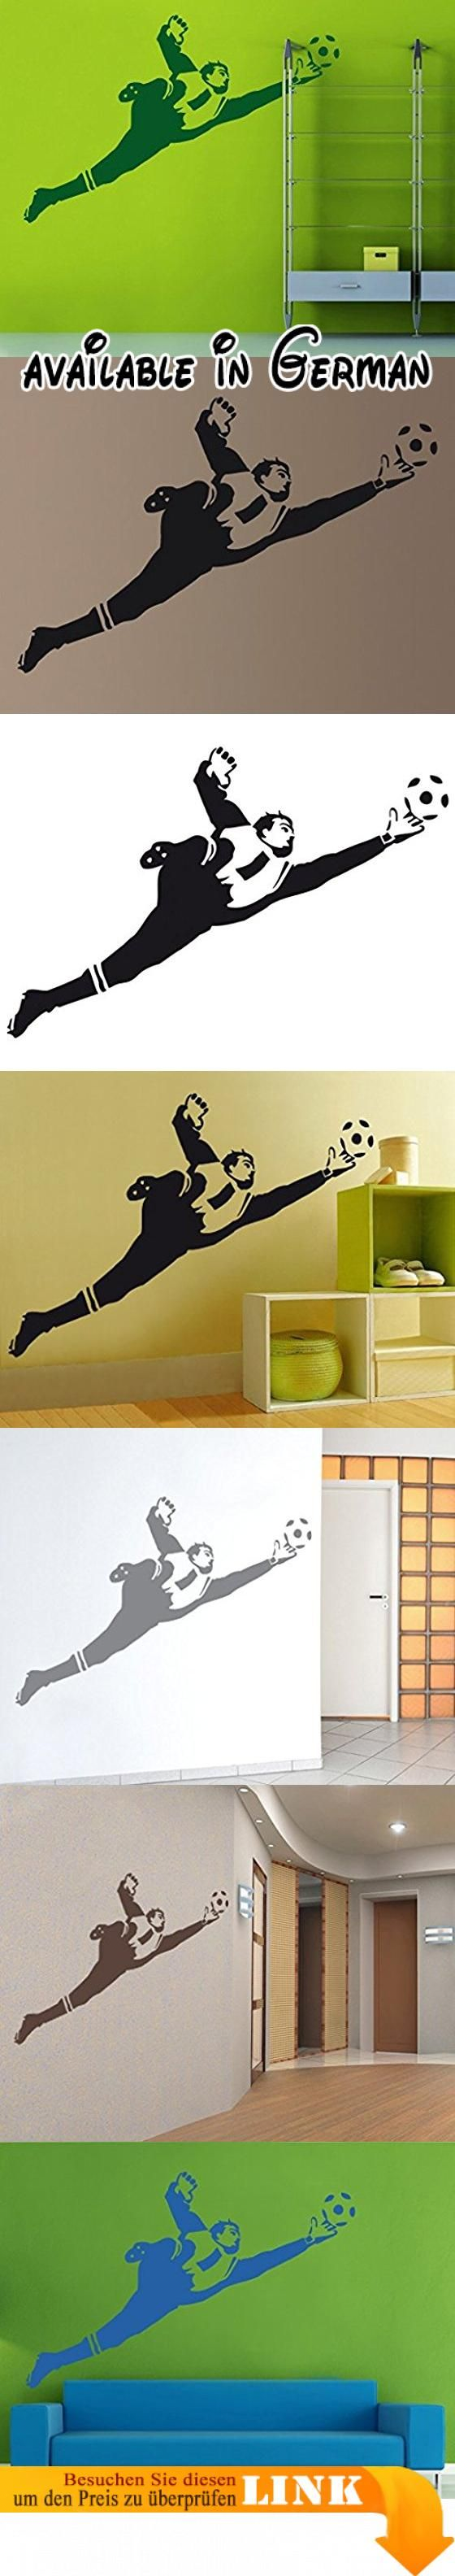 Wandtattoo No.UL453 Torwartparade II Kinderzimmer Jugendzimmer Fussball Torwart, Farbe:Schwarz;Größe:90cm x 137cm. selbstklebende Qualitätsfolie. leicht & rückstandsfrei ablösbar. flexibel, reiß- & wischfest. einfaches Anbringen. klebt auf Raufaser, Glas & Möbeln #Furniture #HOME_FURNITURE_AND_DECOR